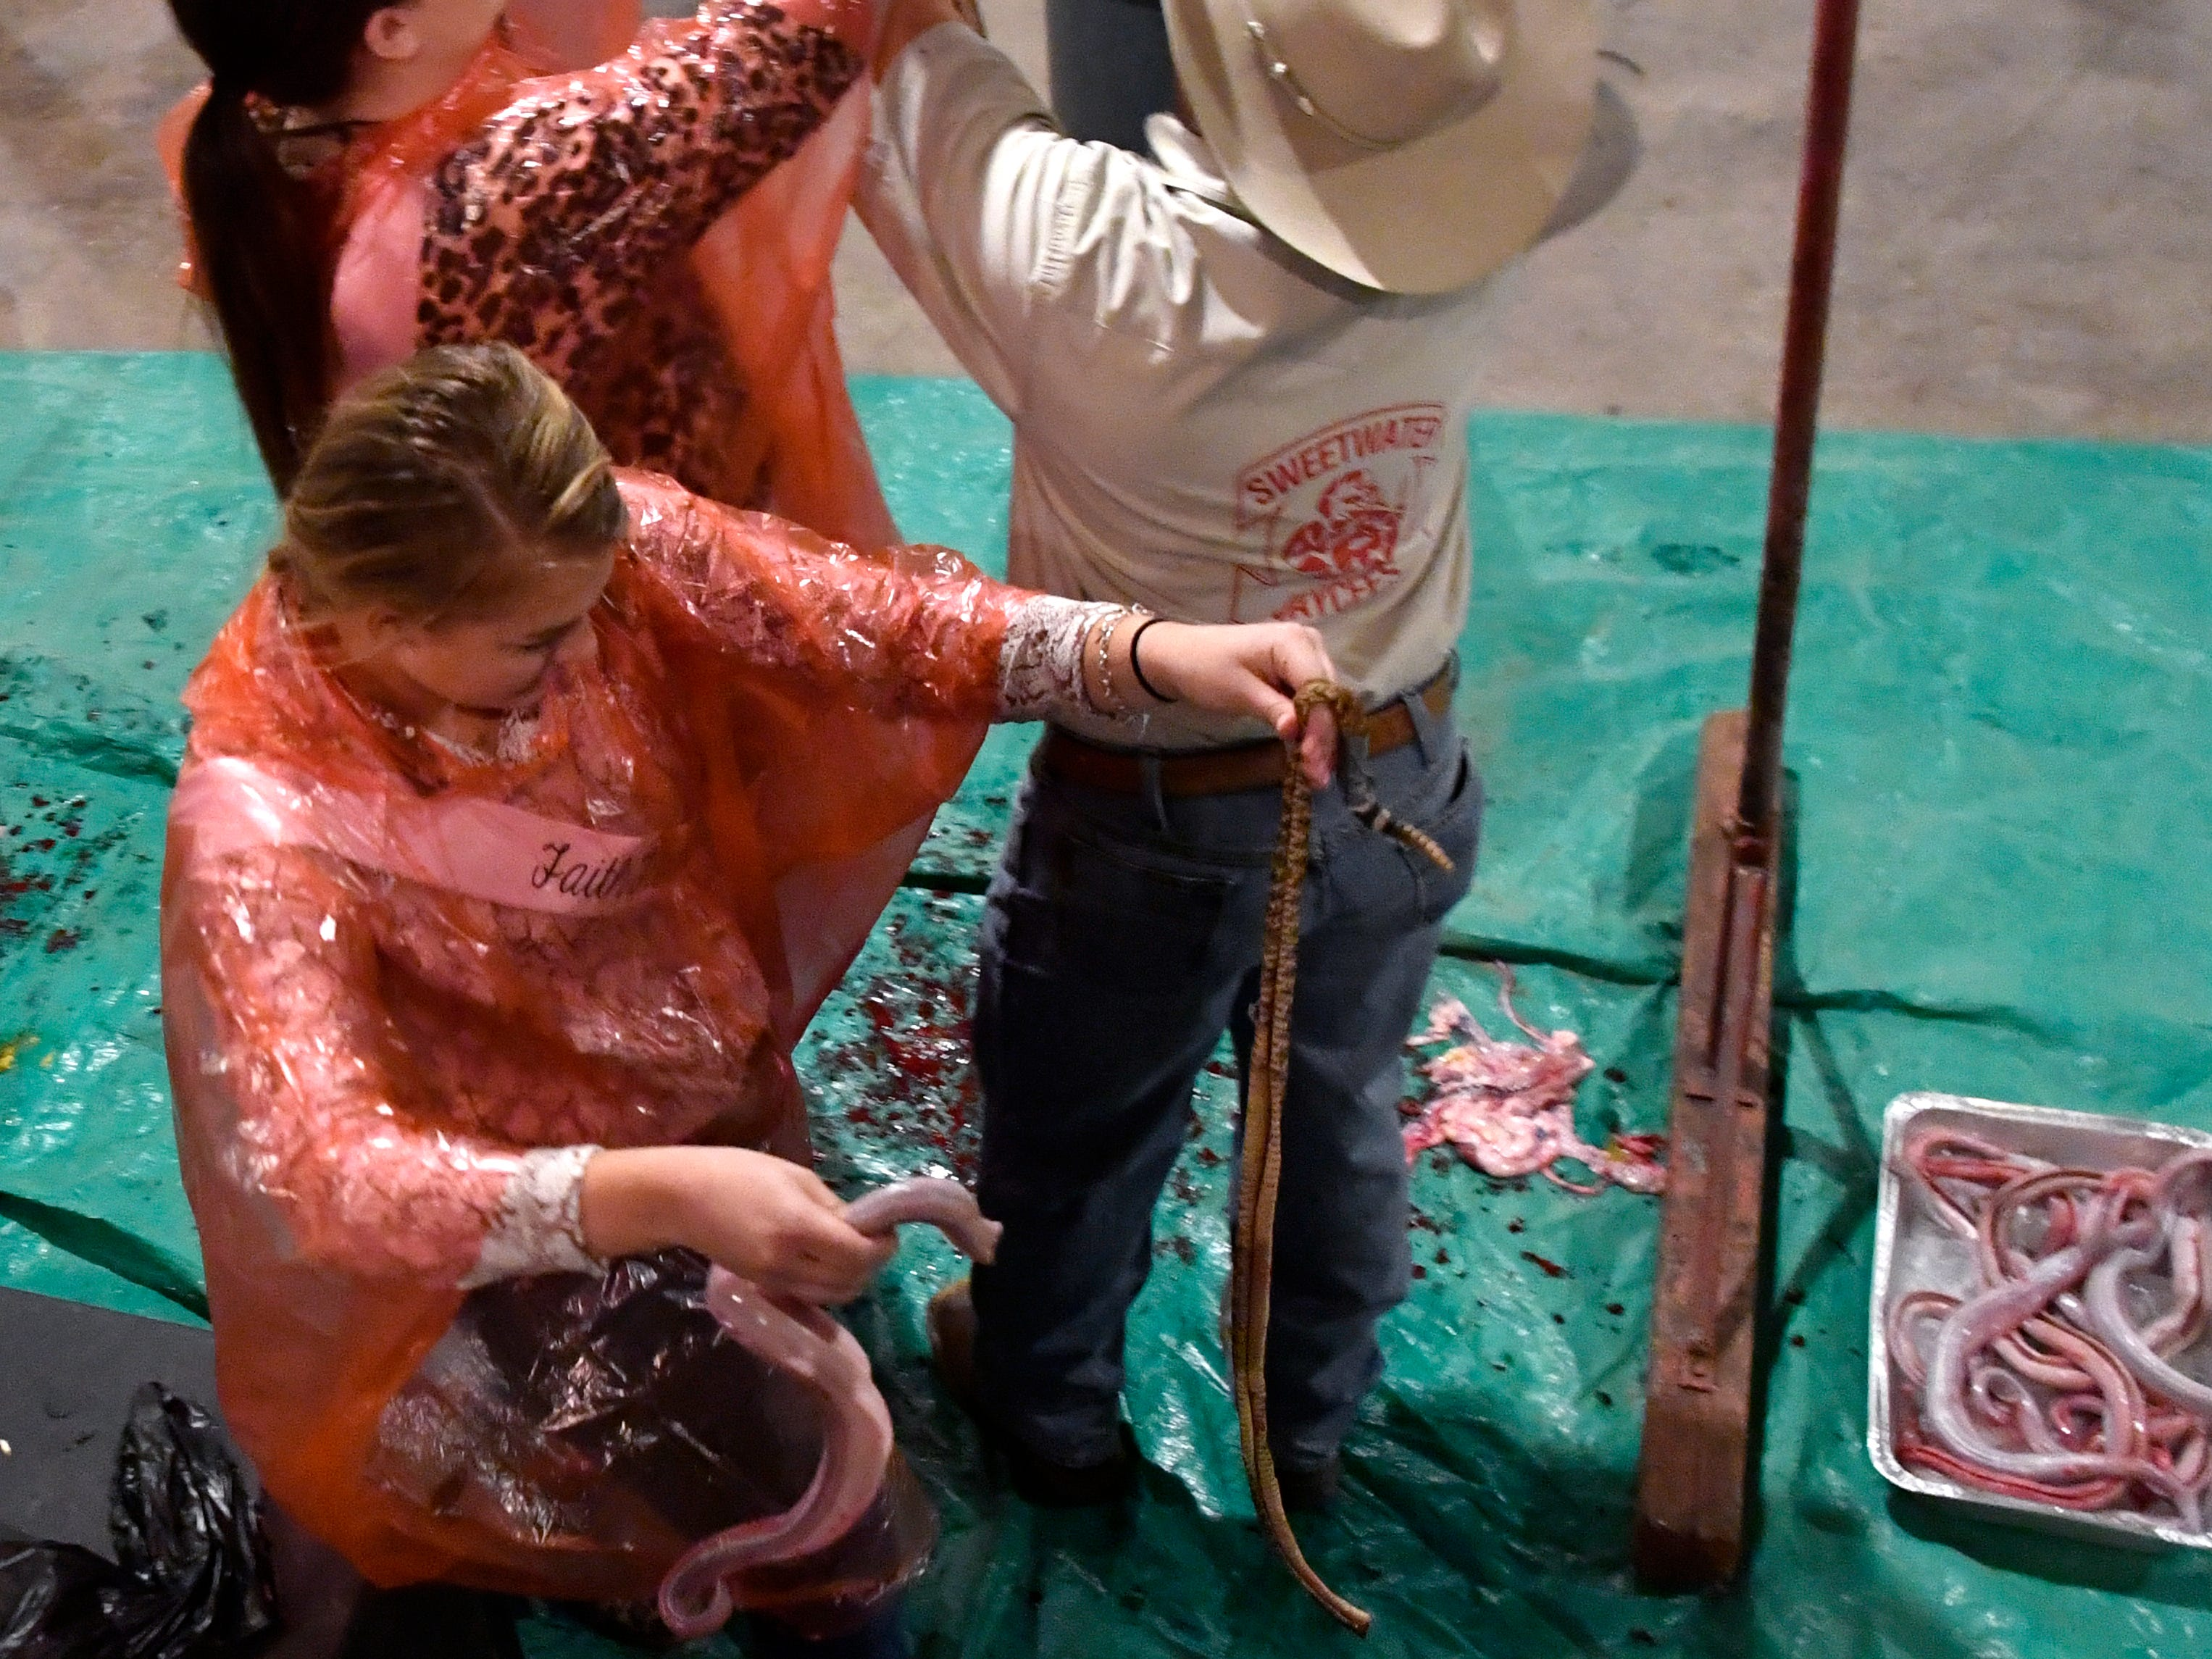 Lily Smola, a junior at Sweetwater High School, carries her skinned rattlesnake away from the pit set up in the Jaycees Barn in Sweetwater Friday Feb. 22, 2019. Behind her, Samatha Jones, a senior at Sweetwater High, is assisted by Cesar Ortiz in cutting down her snake. Media Day introduces the Big Country to this year's Miss Snake Charmer contestants. The pageant will be March 7, followed by the World's Largest Rattlesnake Roundup March 8-10.